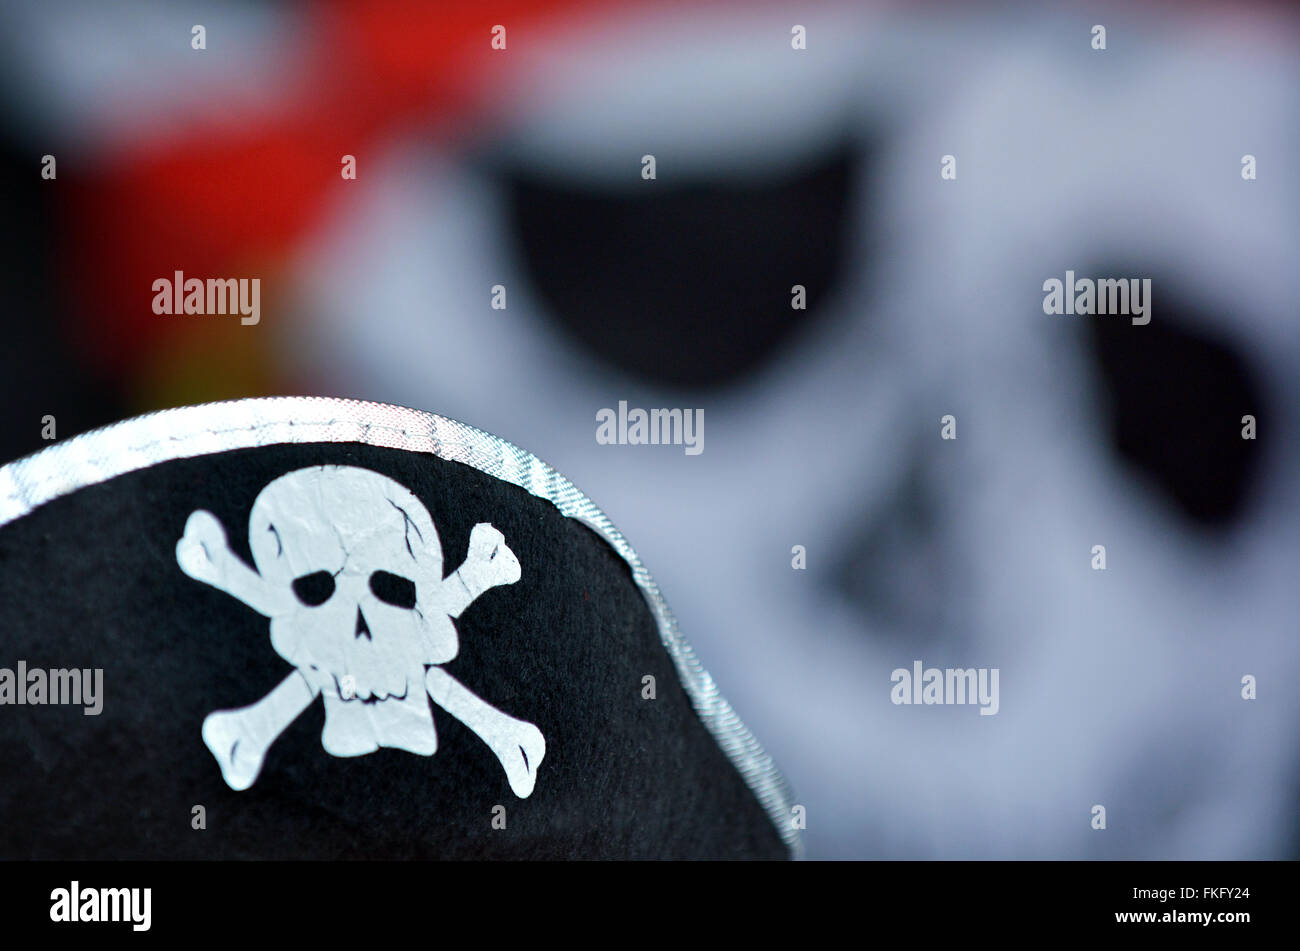 Pirate hat with skull and bones sign and Jolly Roger flag in the background. - Stock Image